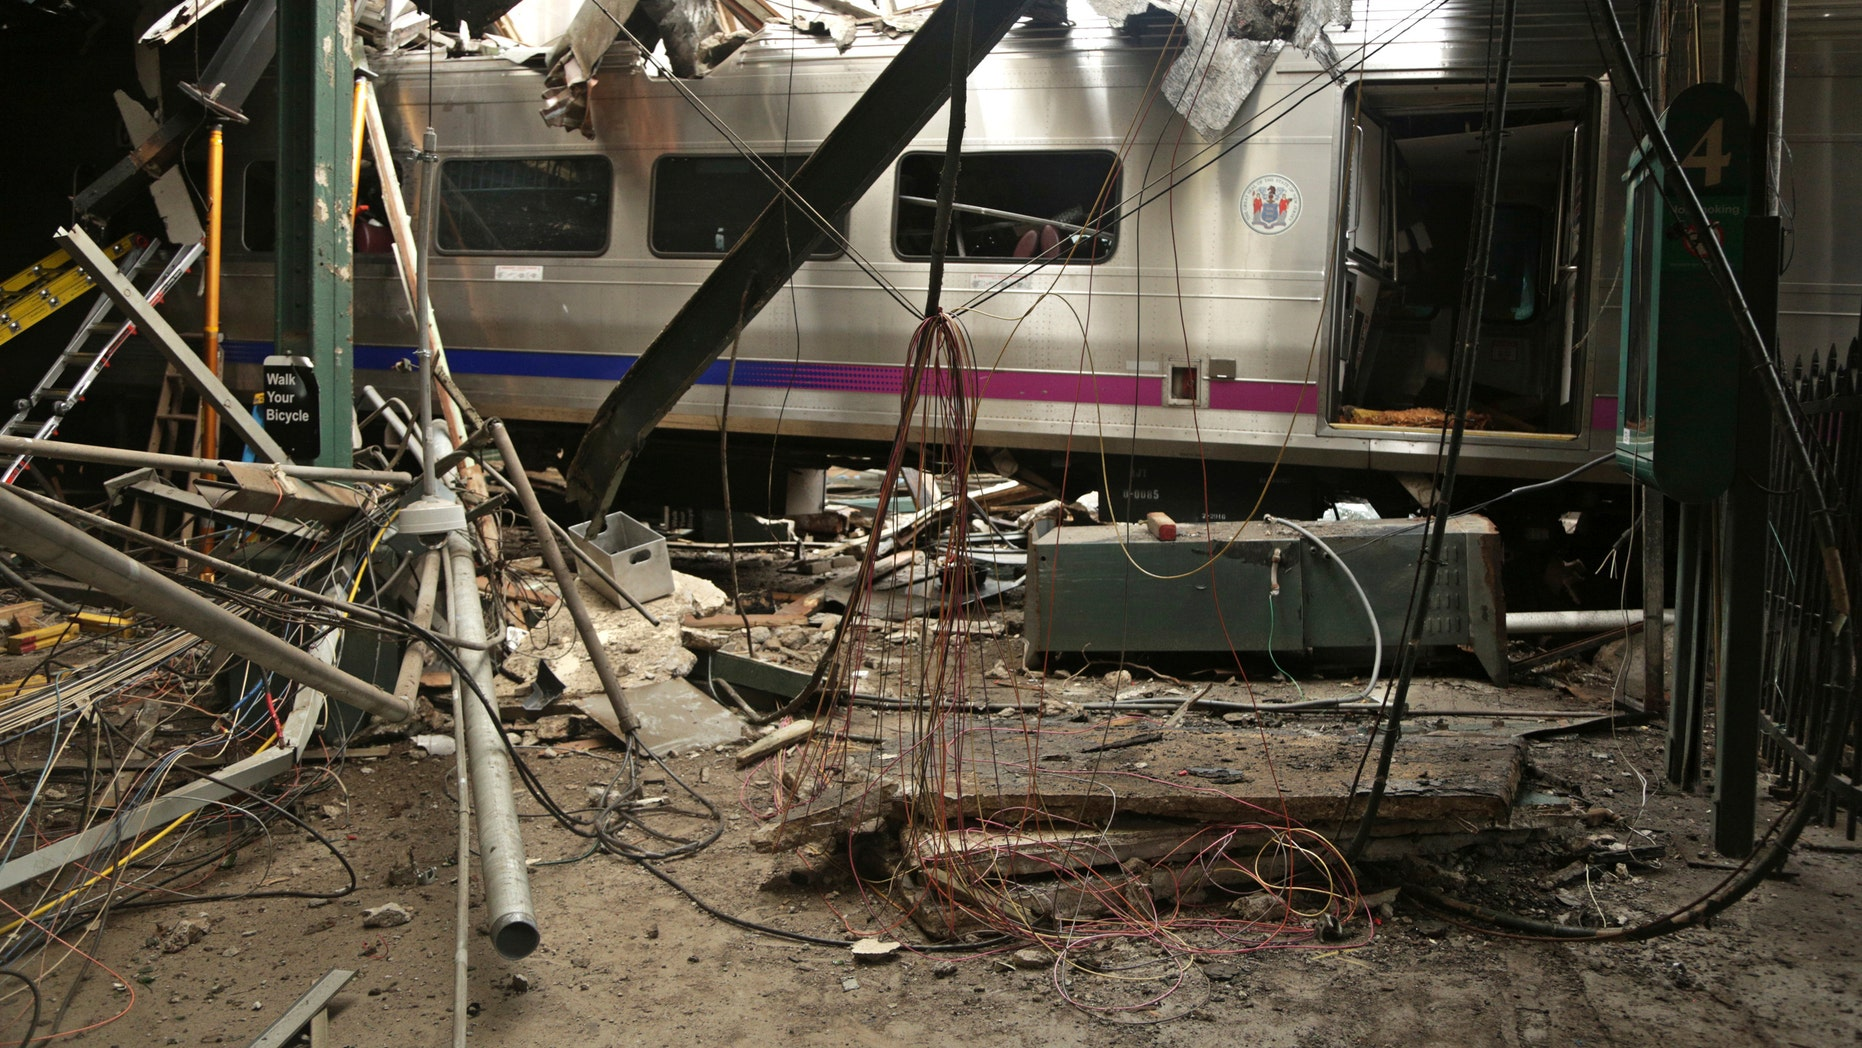 This Oct. 1, 2016, file photo provided by the National Transportation Safety Board shows damage from a Sept. 29, 2016, commuter train crash that killed a woman and injured more than 100 people at the Hoboken Terminal in Hoboken, N.J. Thomas Gallagher, the engineer of the commuter train that slammed into the station going double the 10 mph speed limit, suffered from sleep apnea that had gone undiagnosed, his lawyer told The Associated Press on Wednesday, Nov. 16, 2016. A U.S. official told the AP that investigators are looking at it as a potential cause.